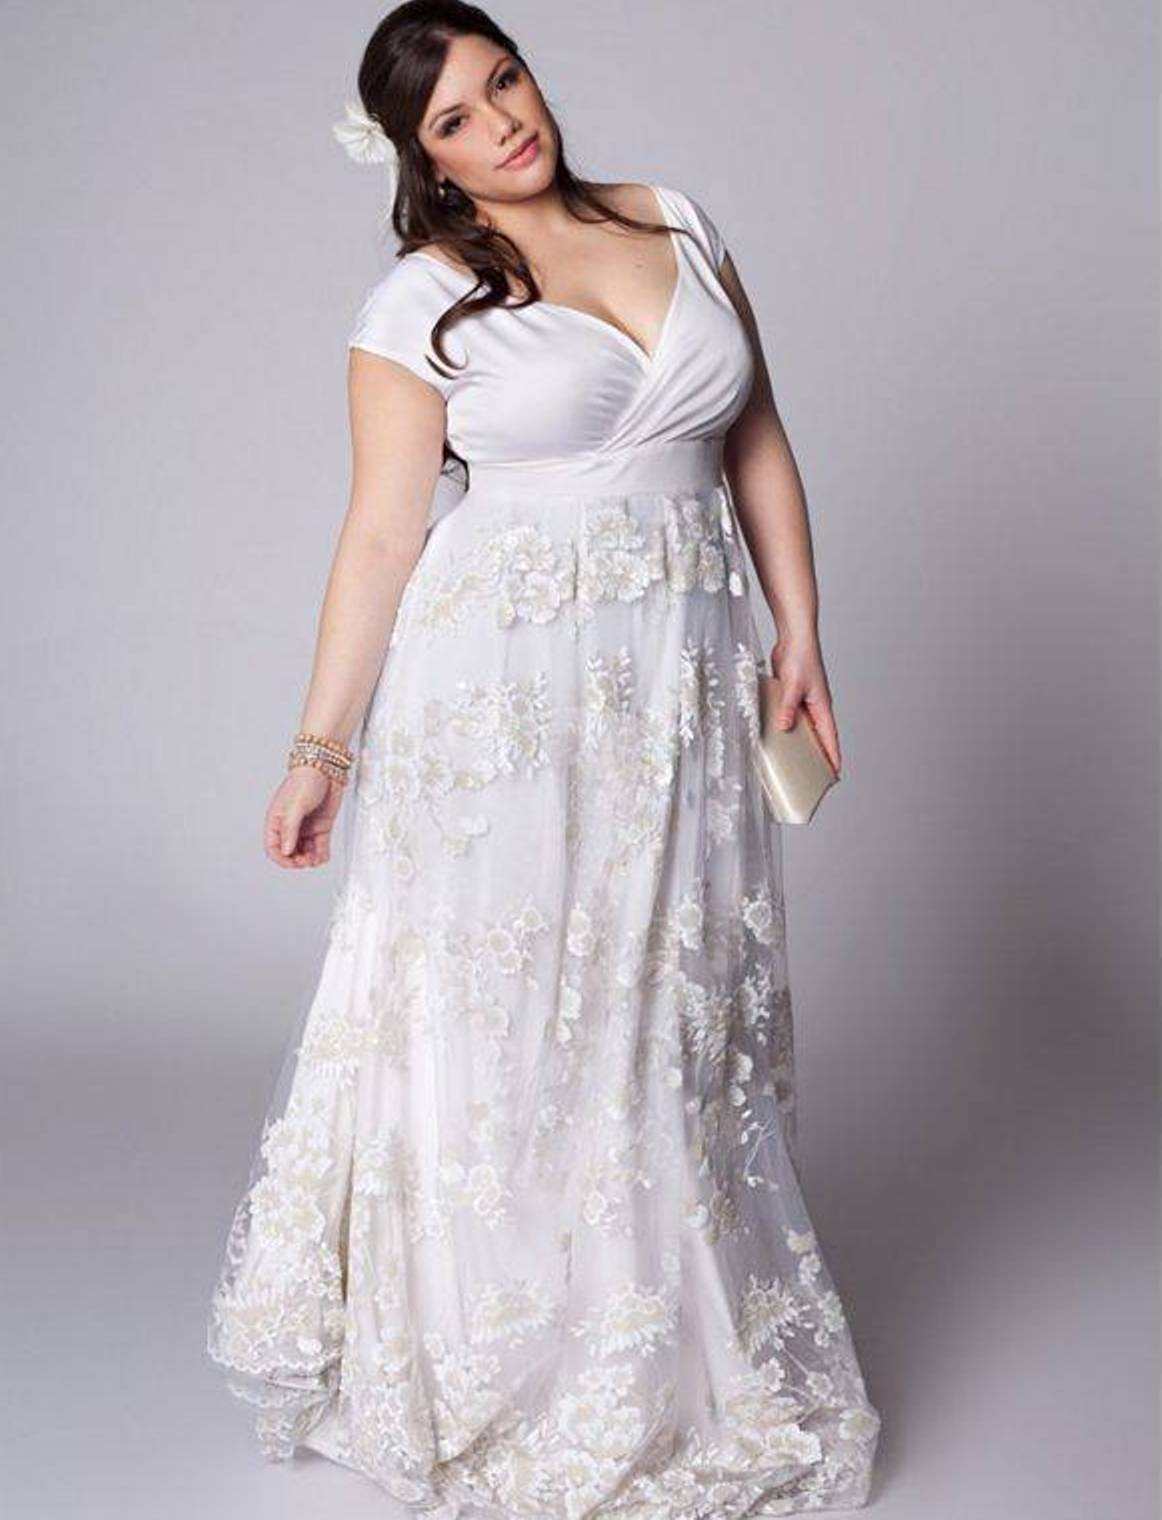 plus size wedding dresses plus sized wedding dresses Wedding Dresses for Plus Size Women